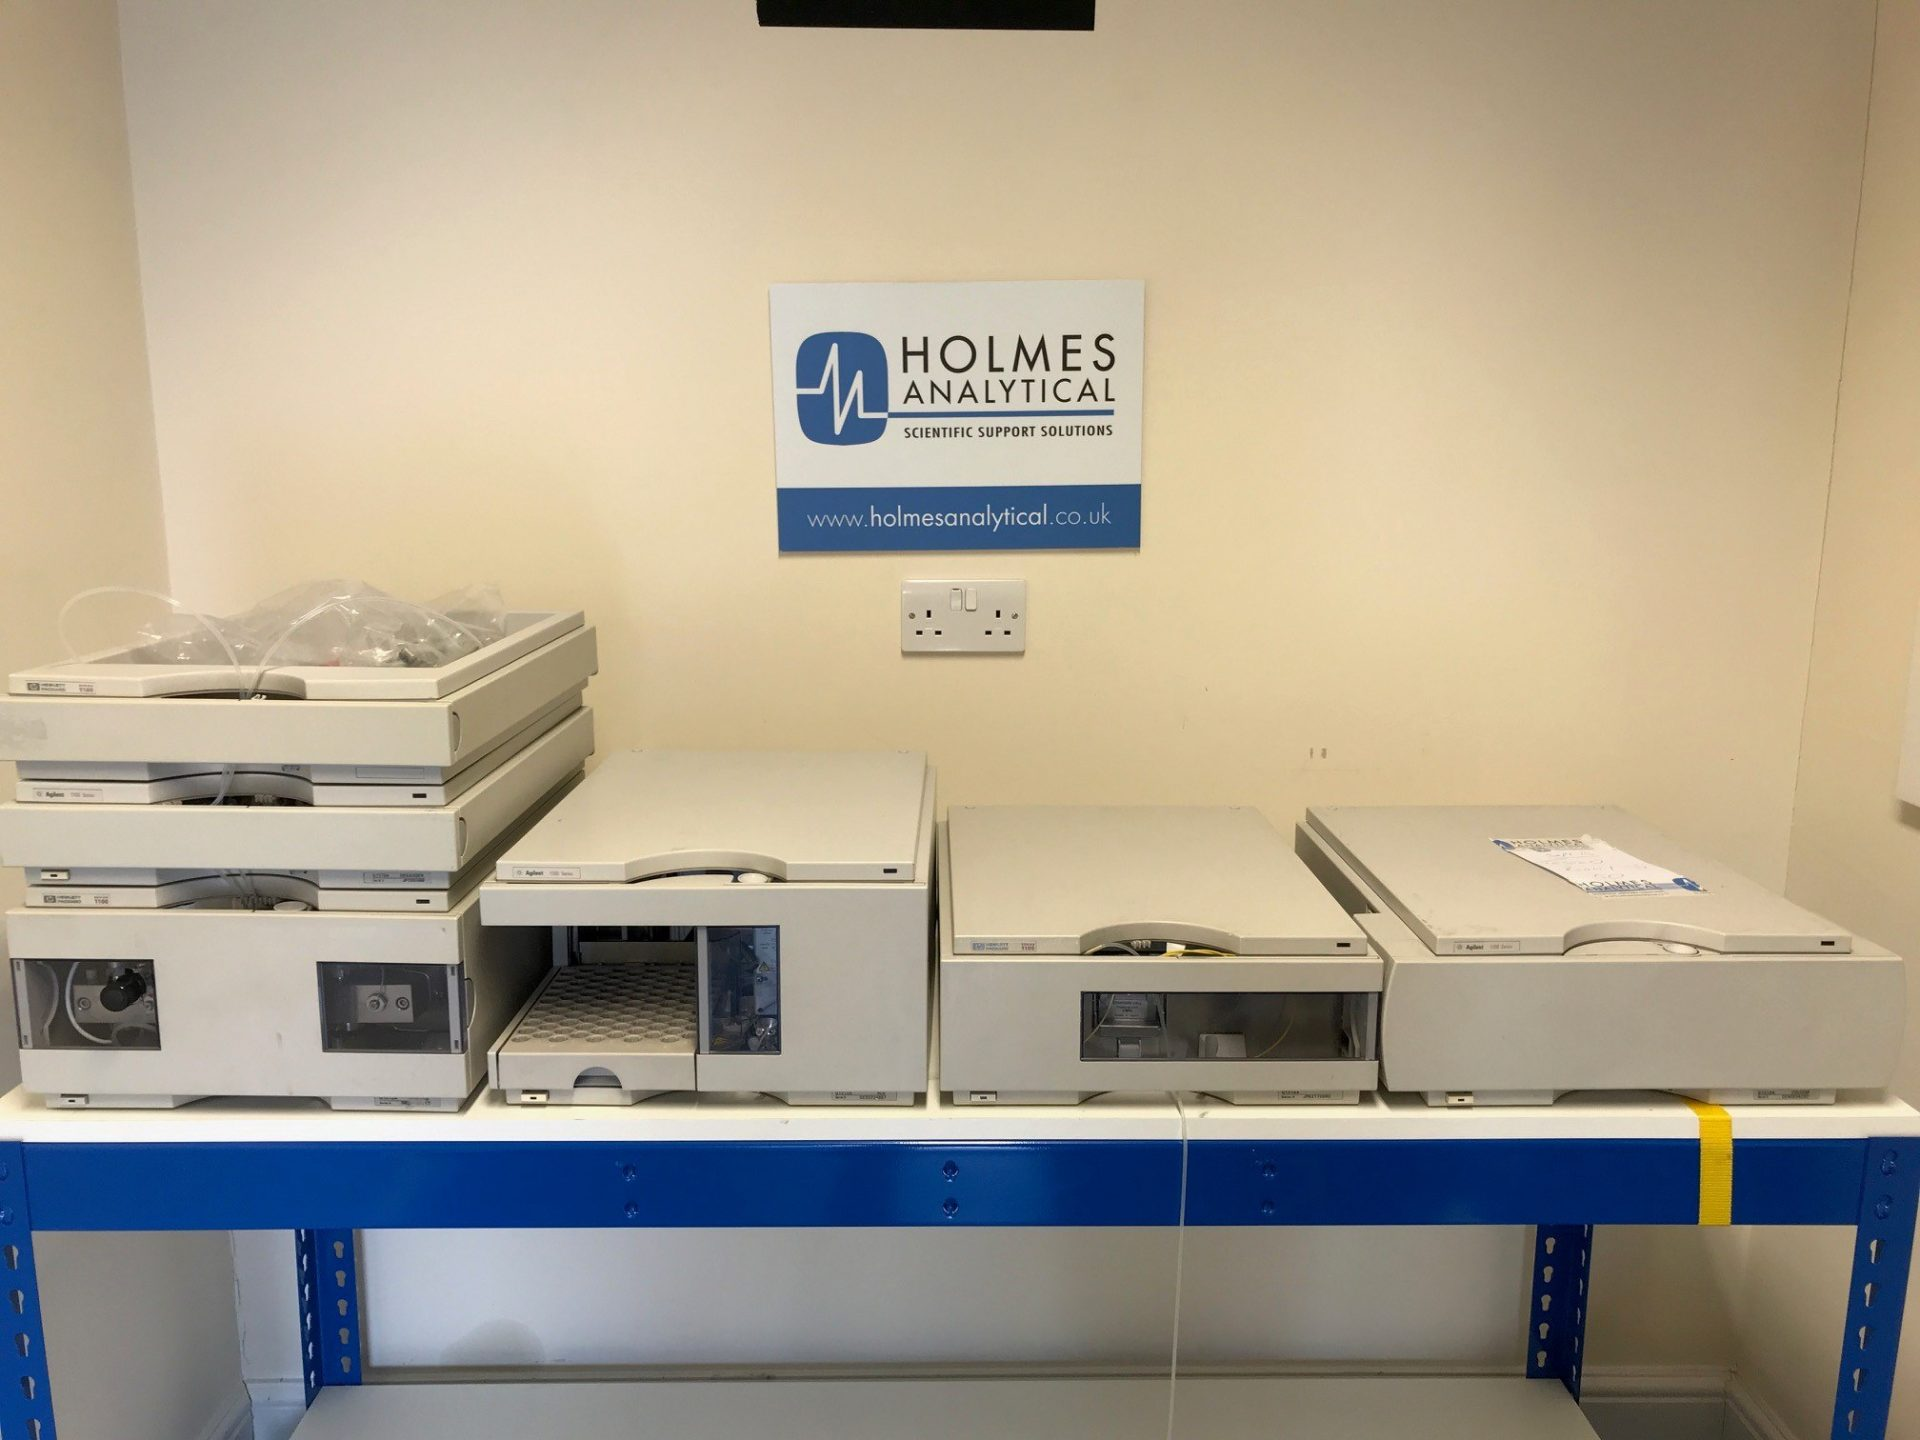 Agilent 1100 HPLC modules